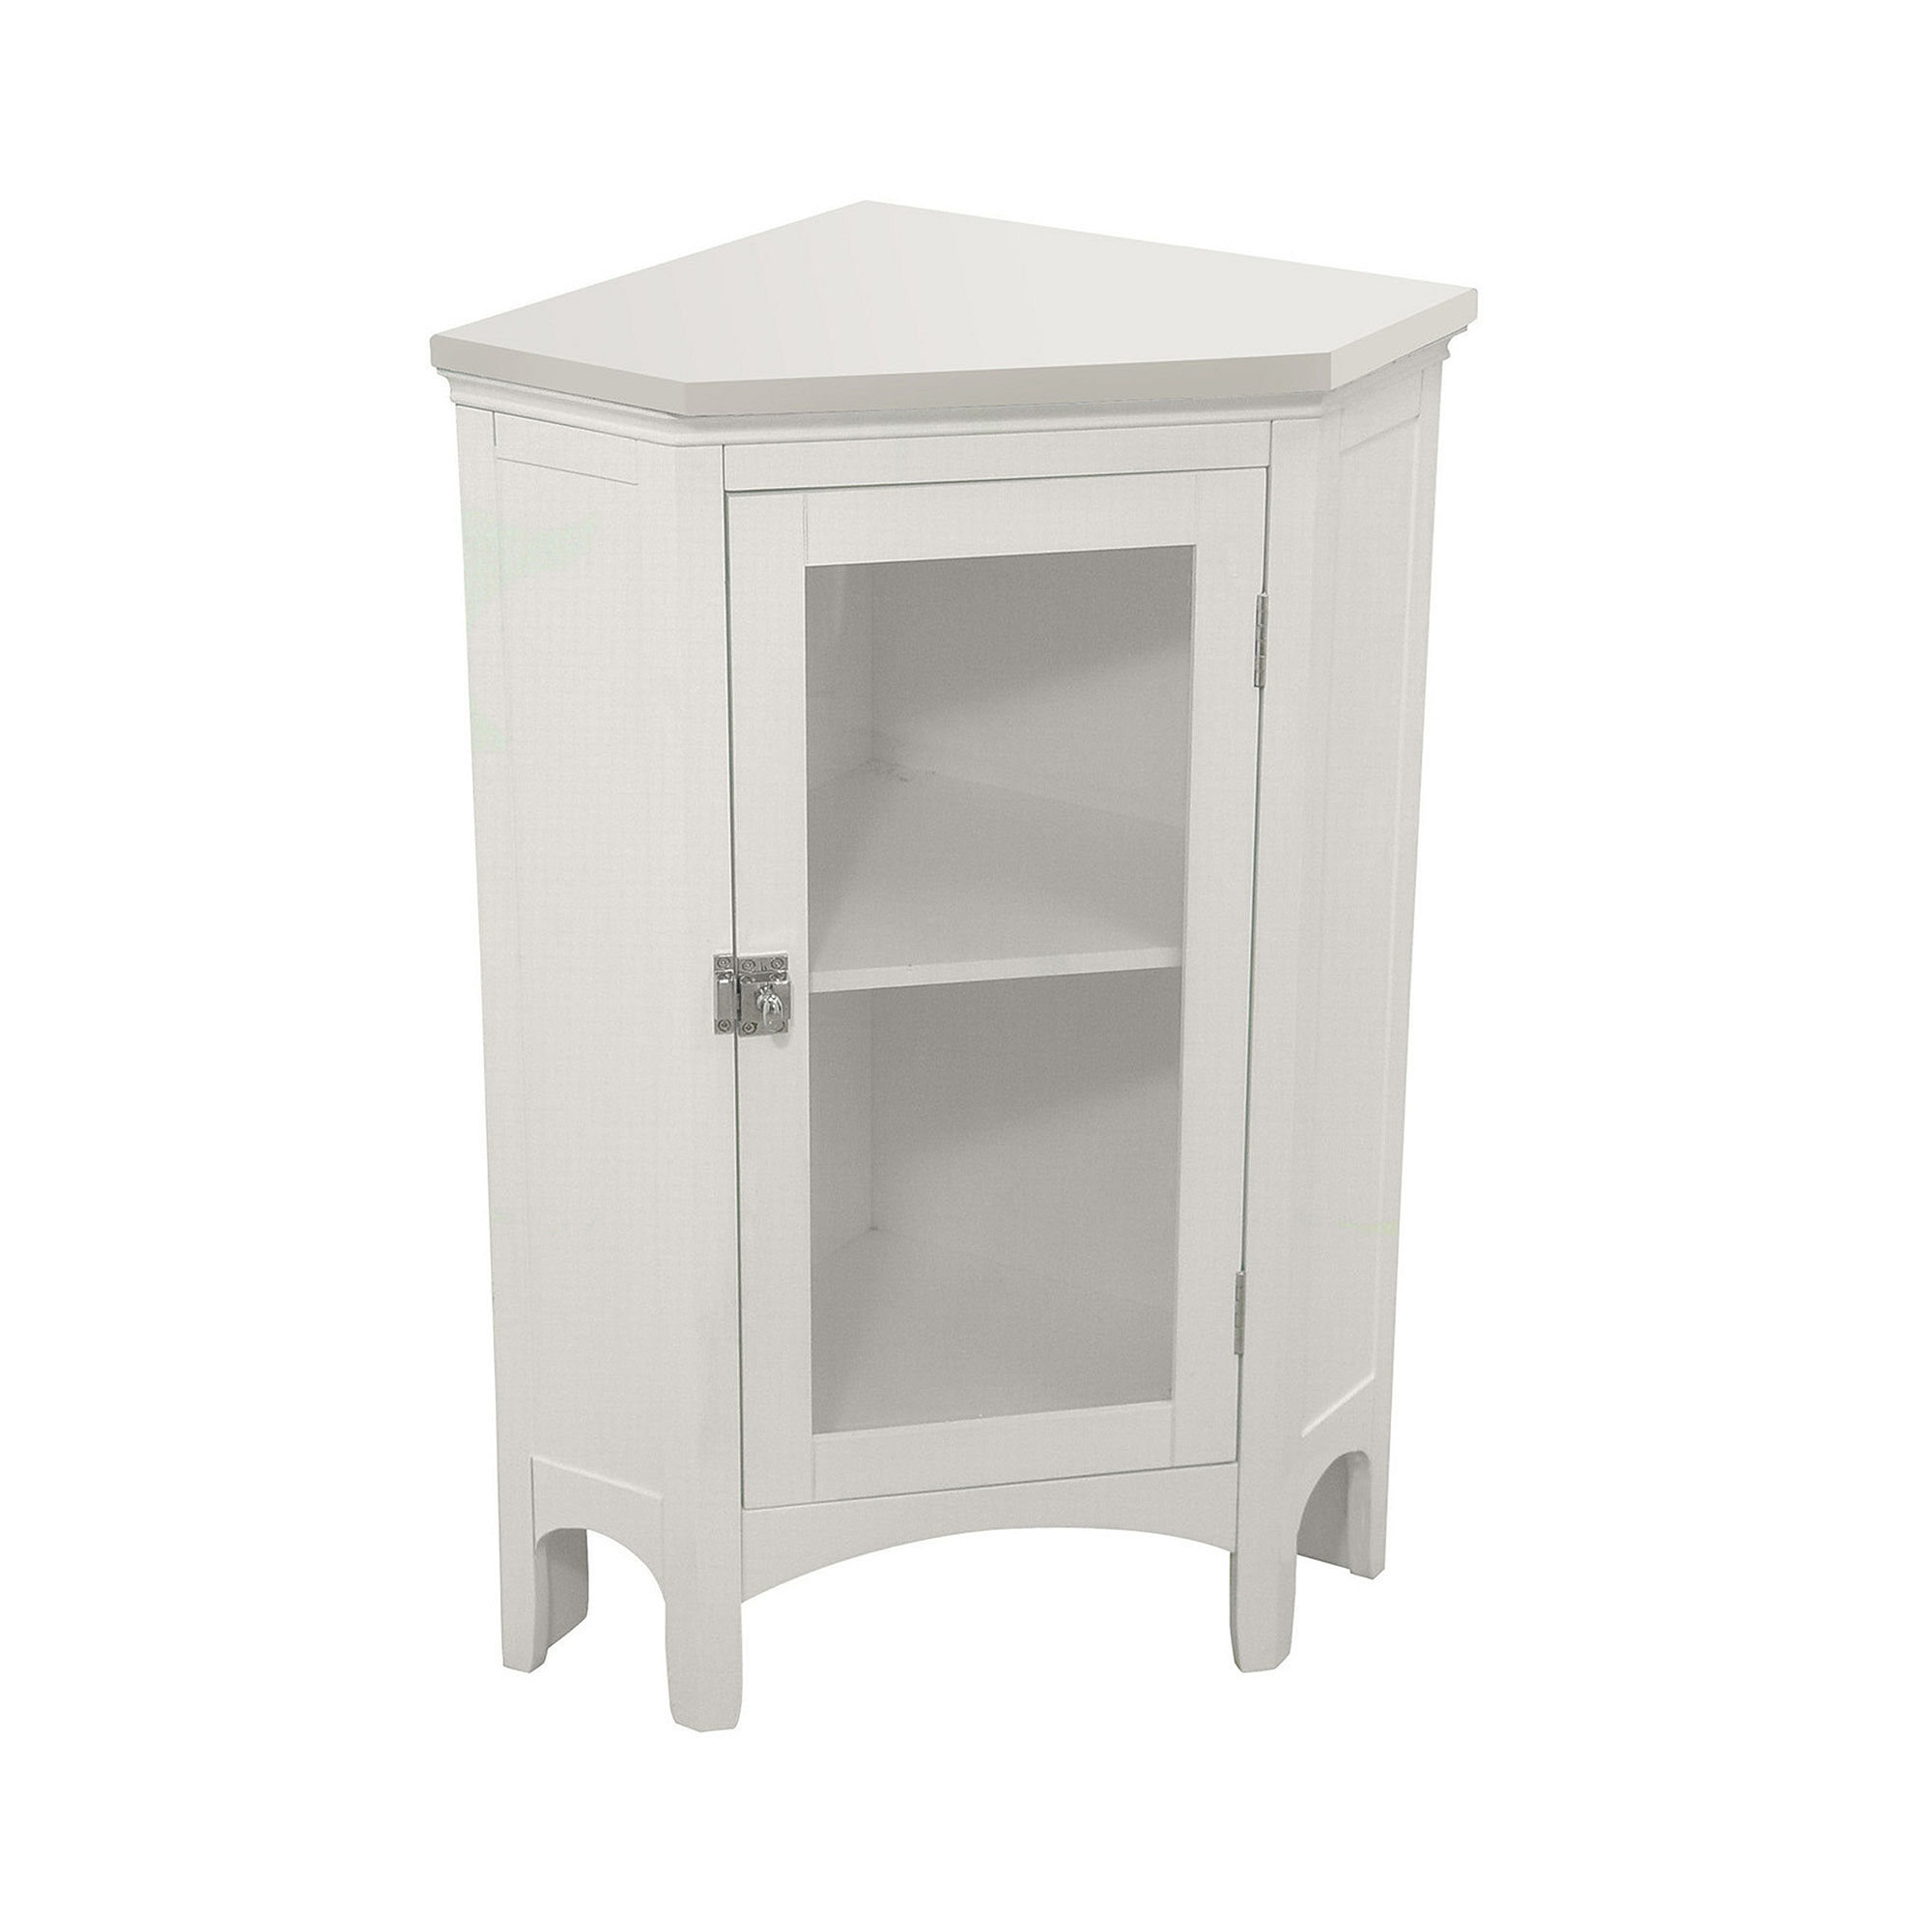 floor cabinet for you if you find rating small bathroom corner floor